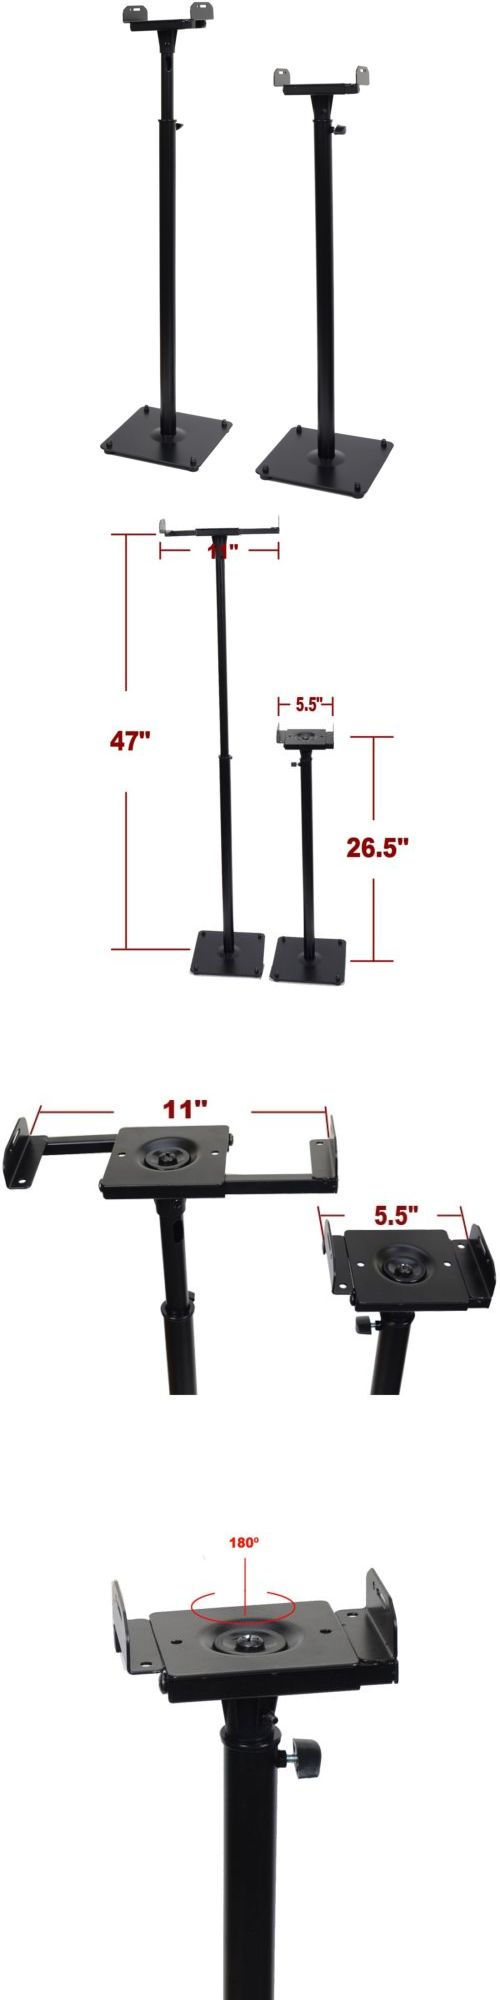 Speaker Mounts and Stands: (2) Heavy Duty Side Clamp Speaker Mount Surround Sound Bookshelf Floor Stand M99 BUY IT NOW ONLY: $37.9